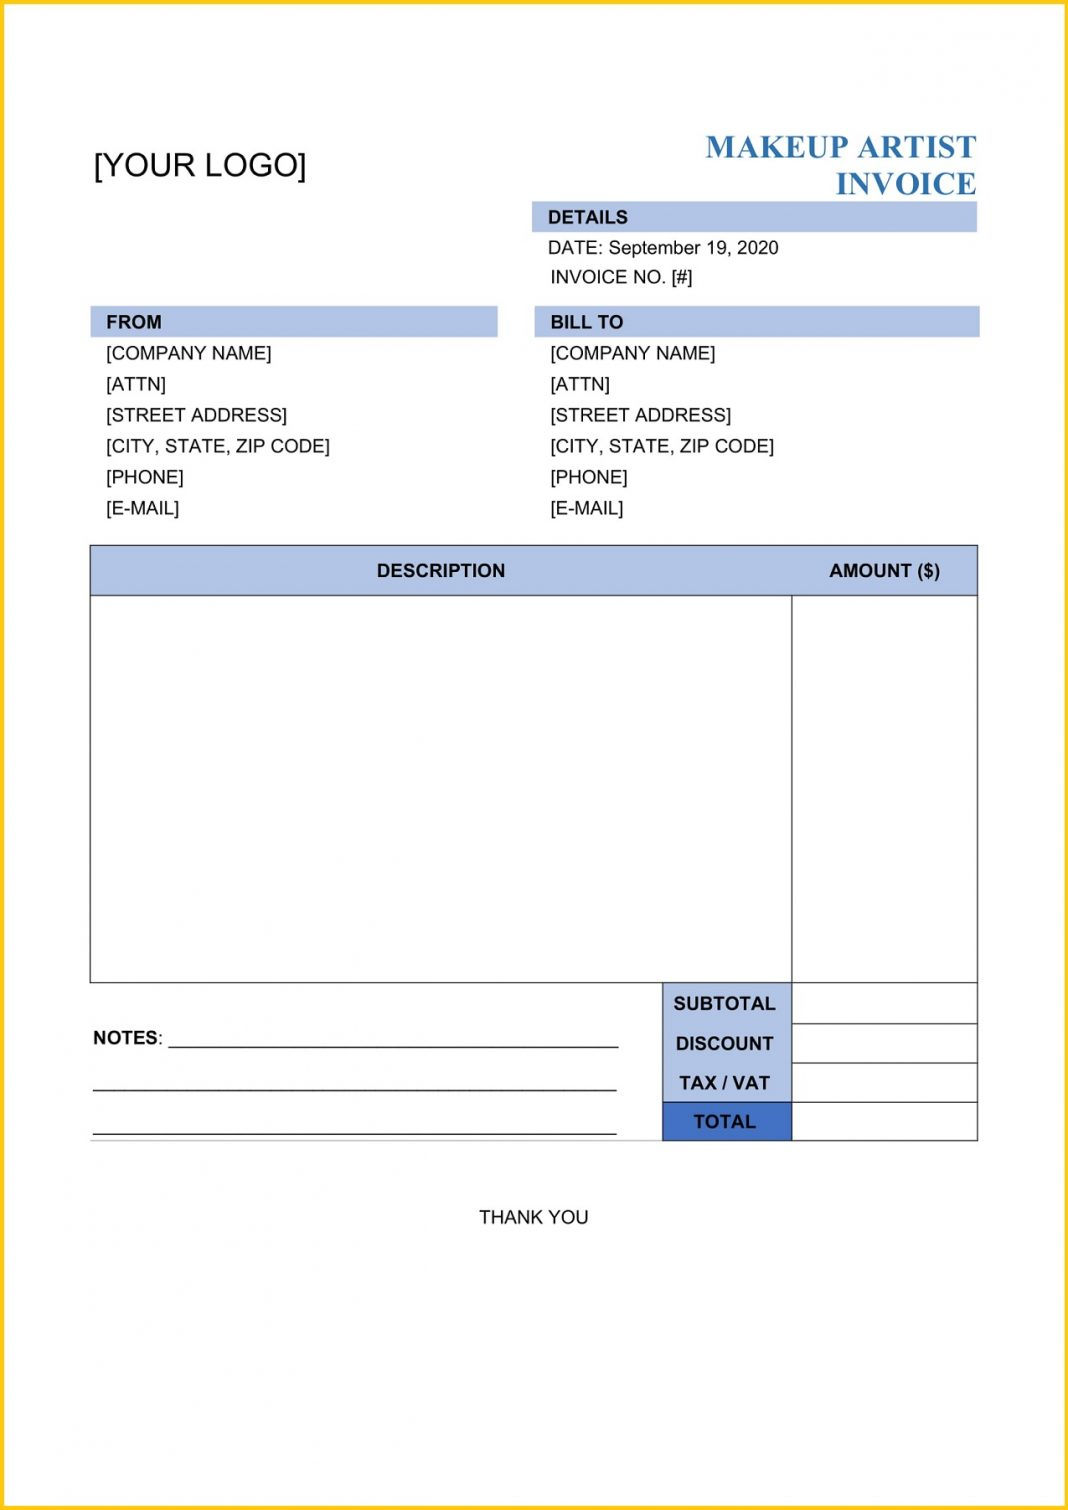 Makeup Artist Invoice Word Template Beauty Quote Receipt Wedding Hair And Sample Bill Book  Large